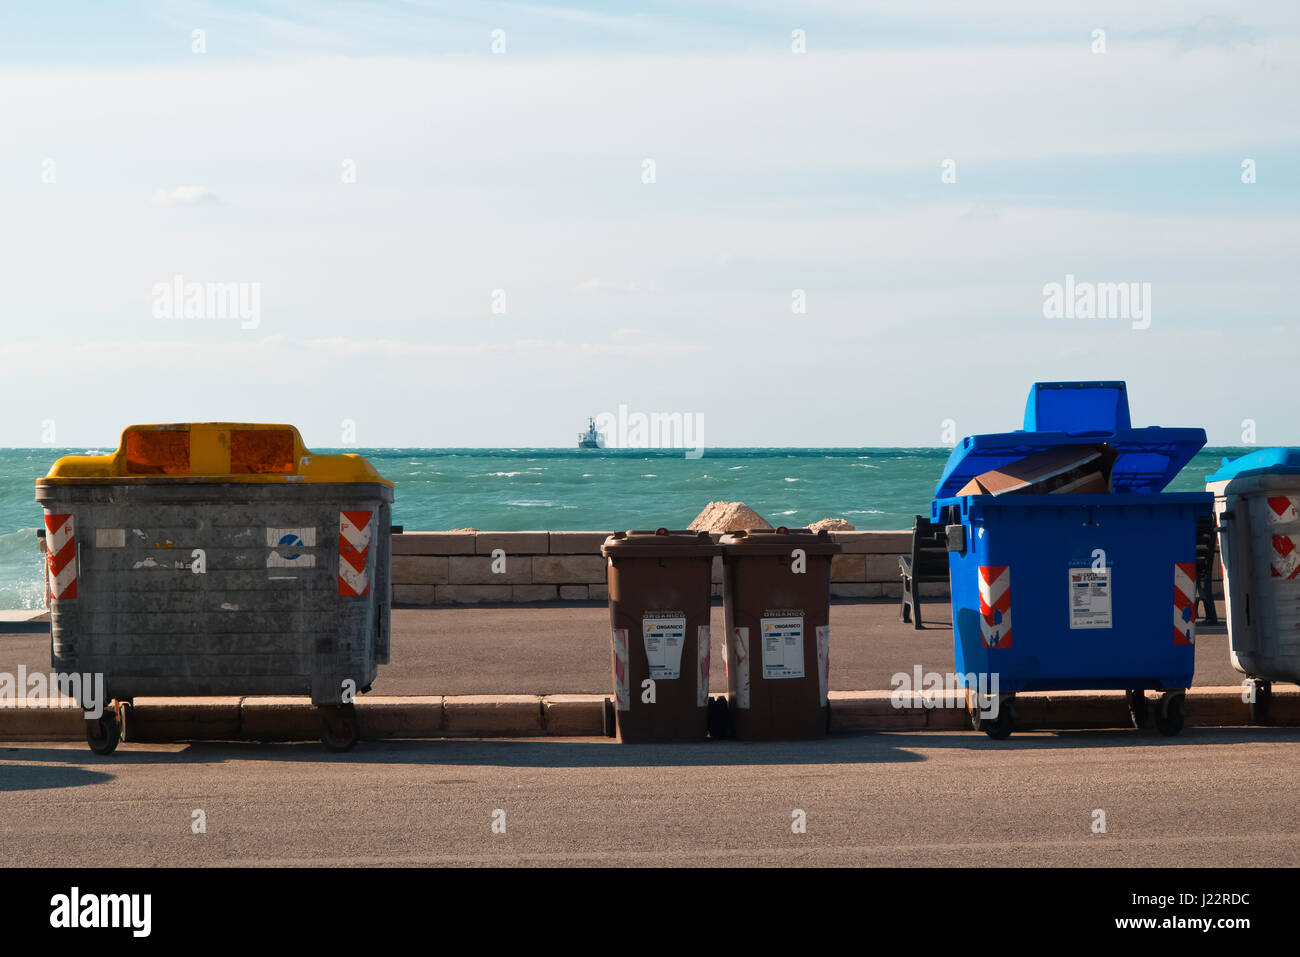 Waste bin on the waterfront - Stock Image